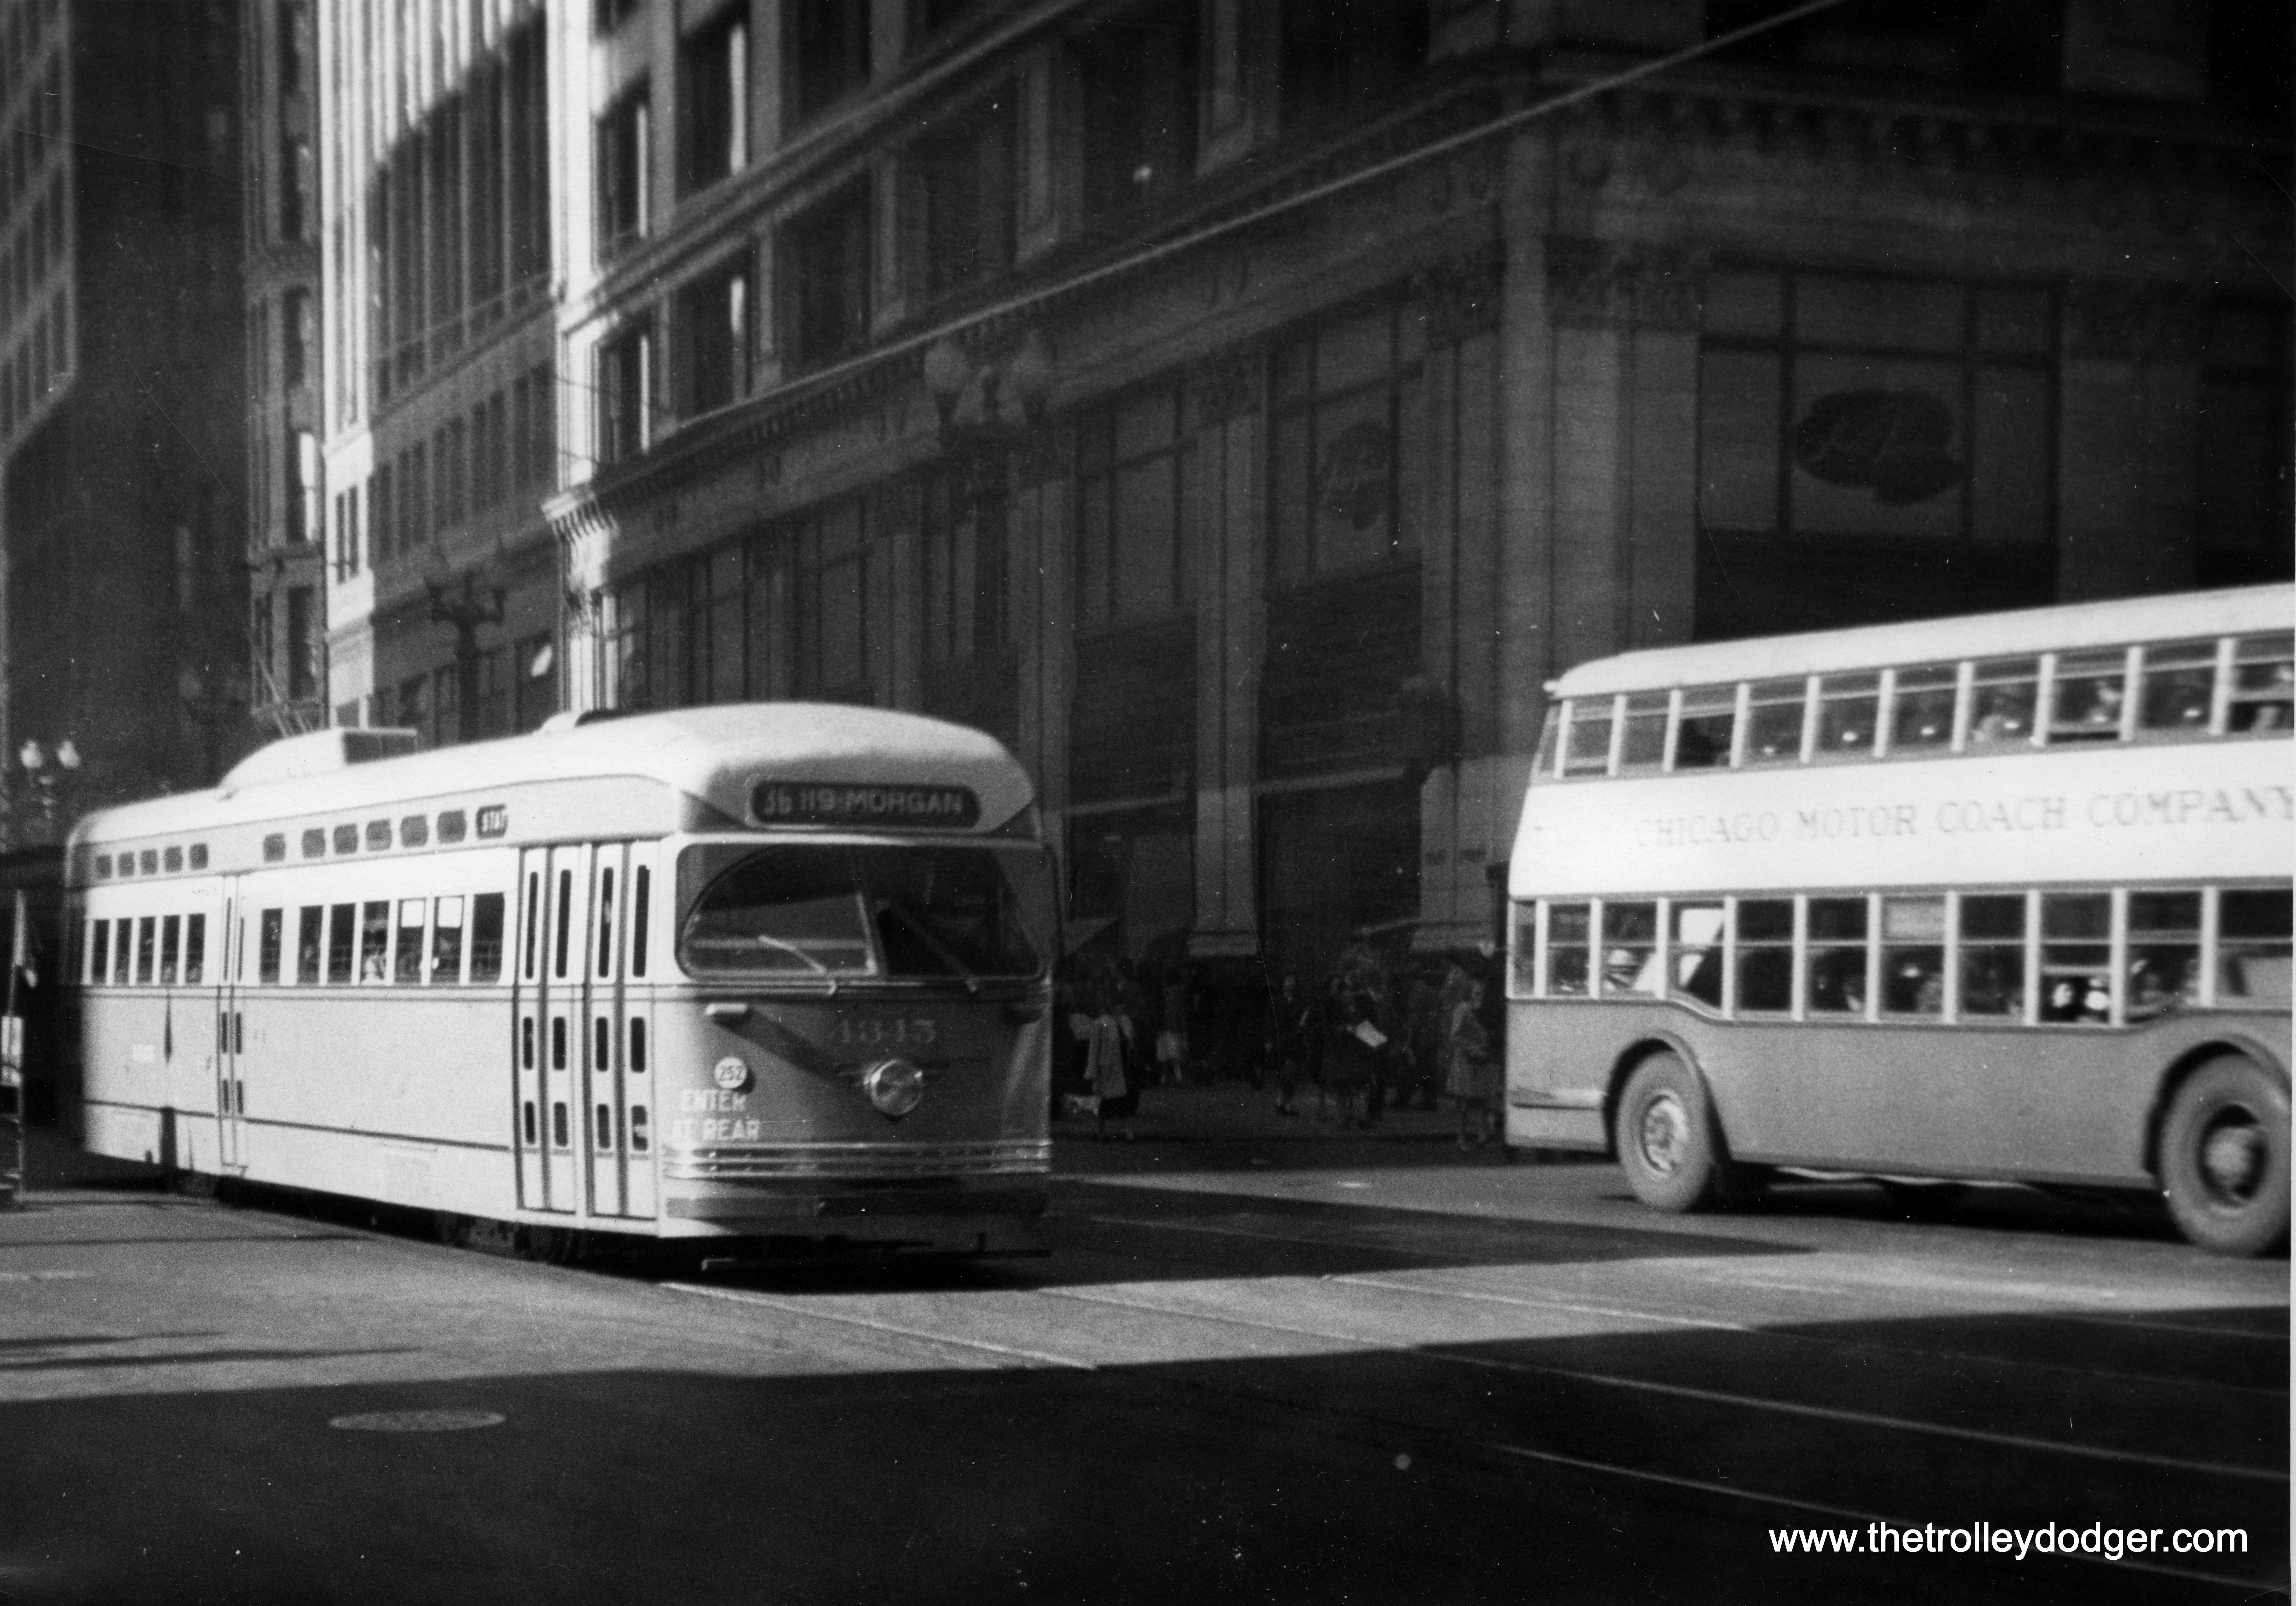 Chicago Streetcars In Black And White The Trolley Dodger